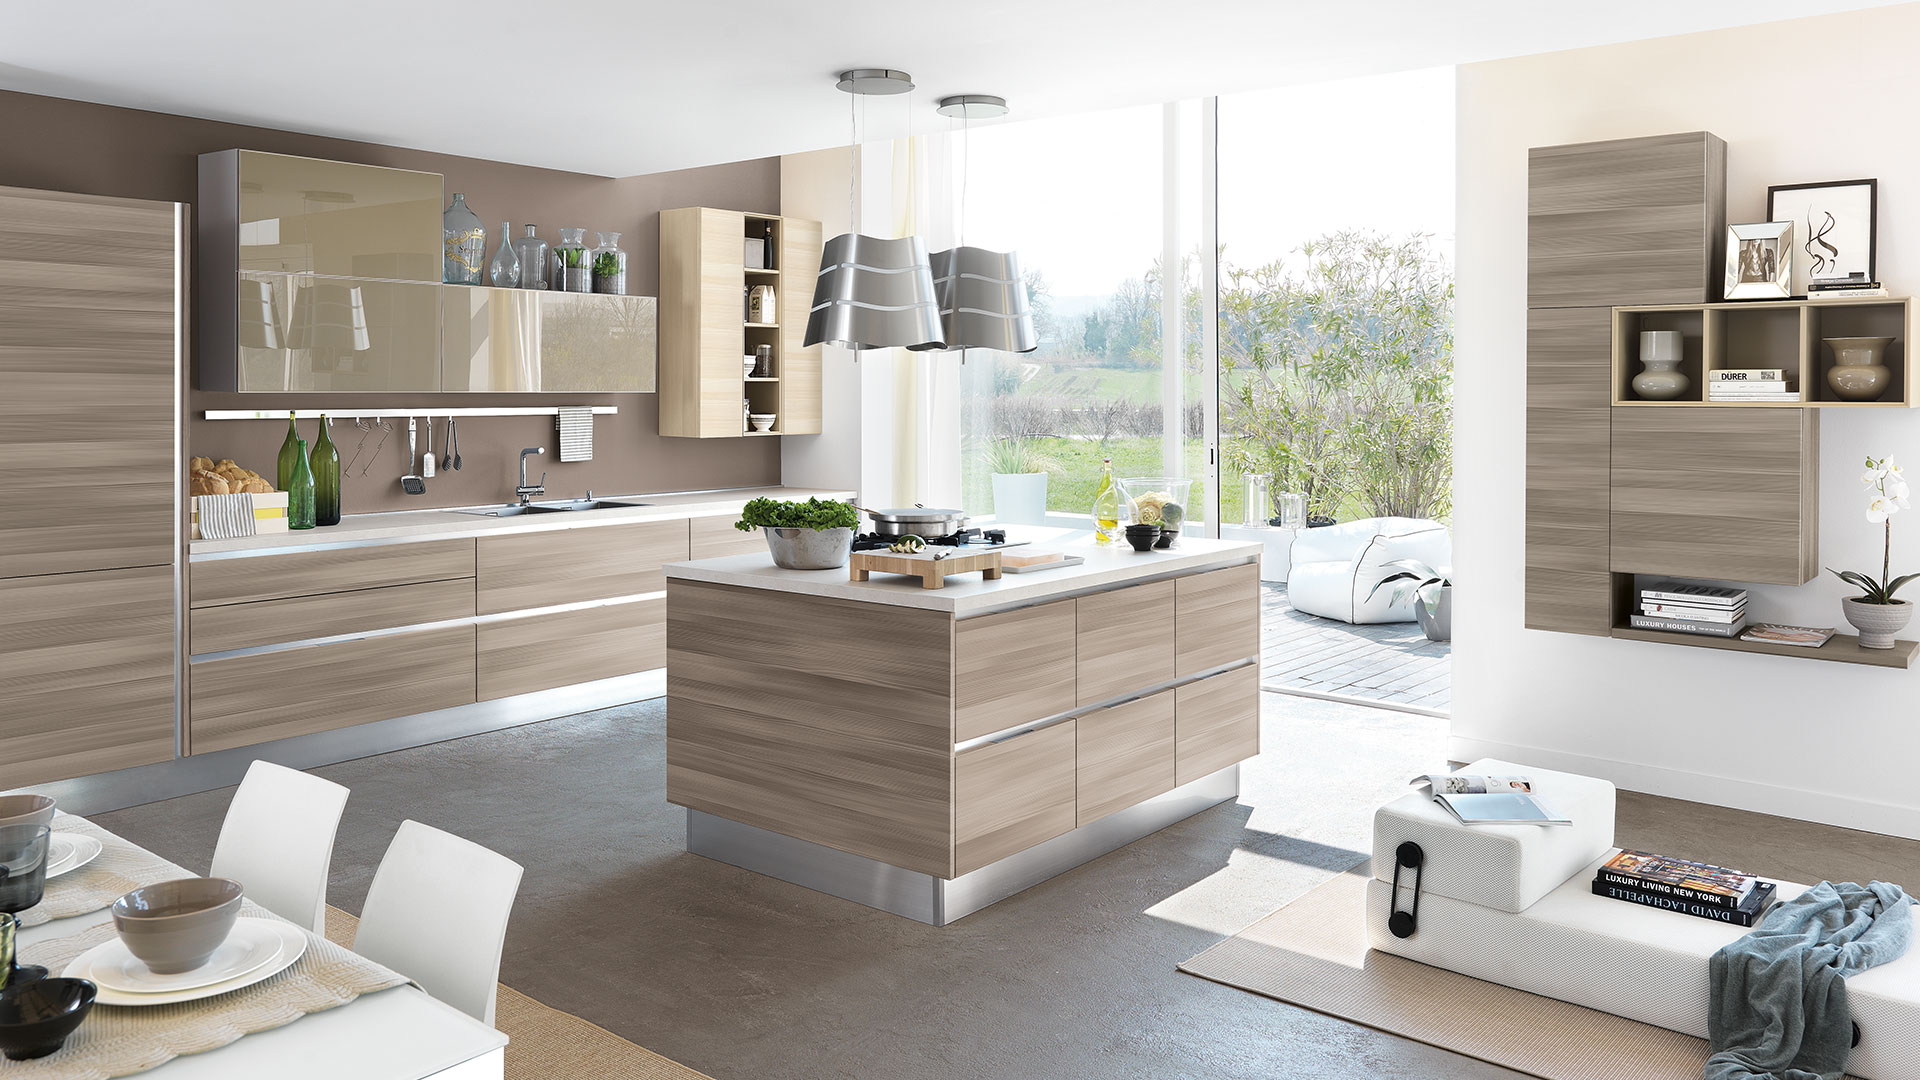 Essenza - Modern Kitchens - Cucine LUBE